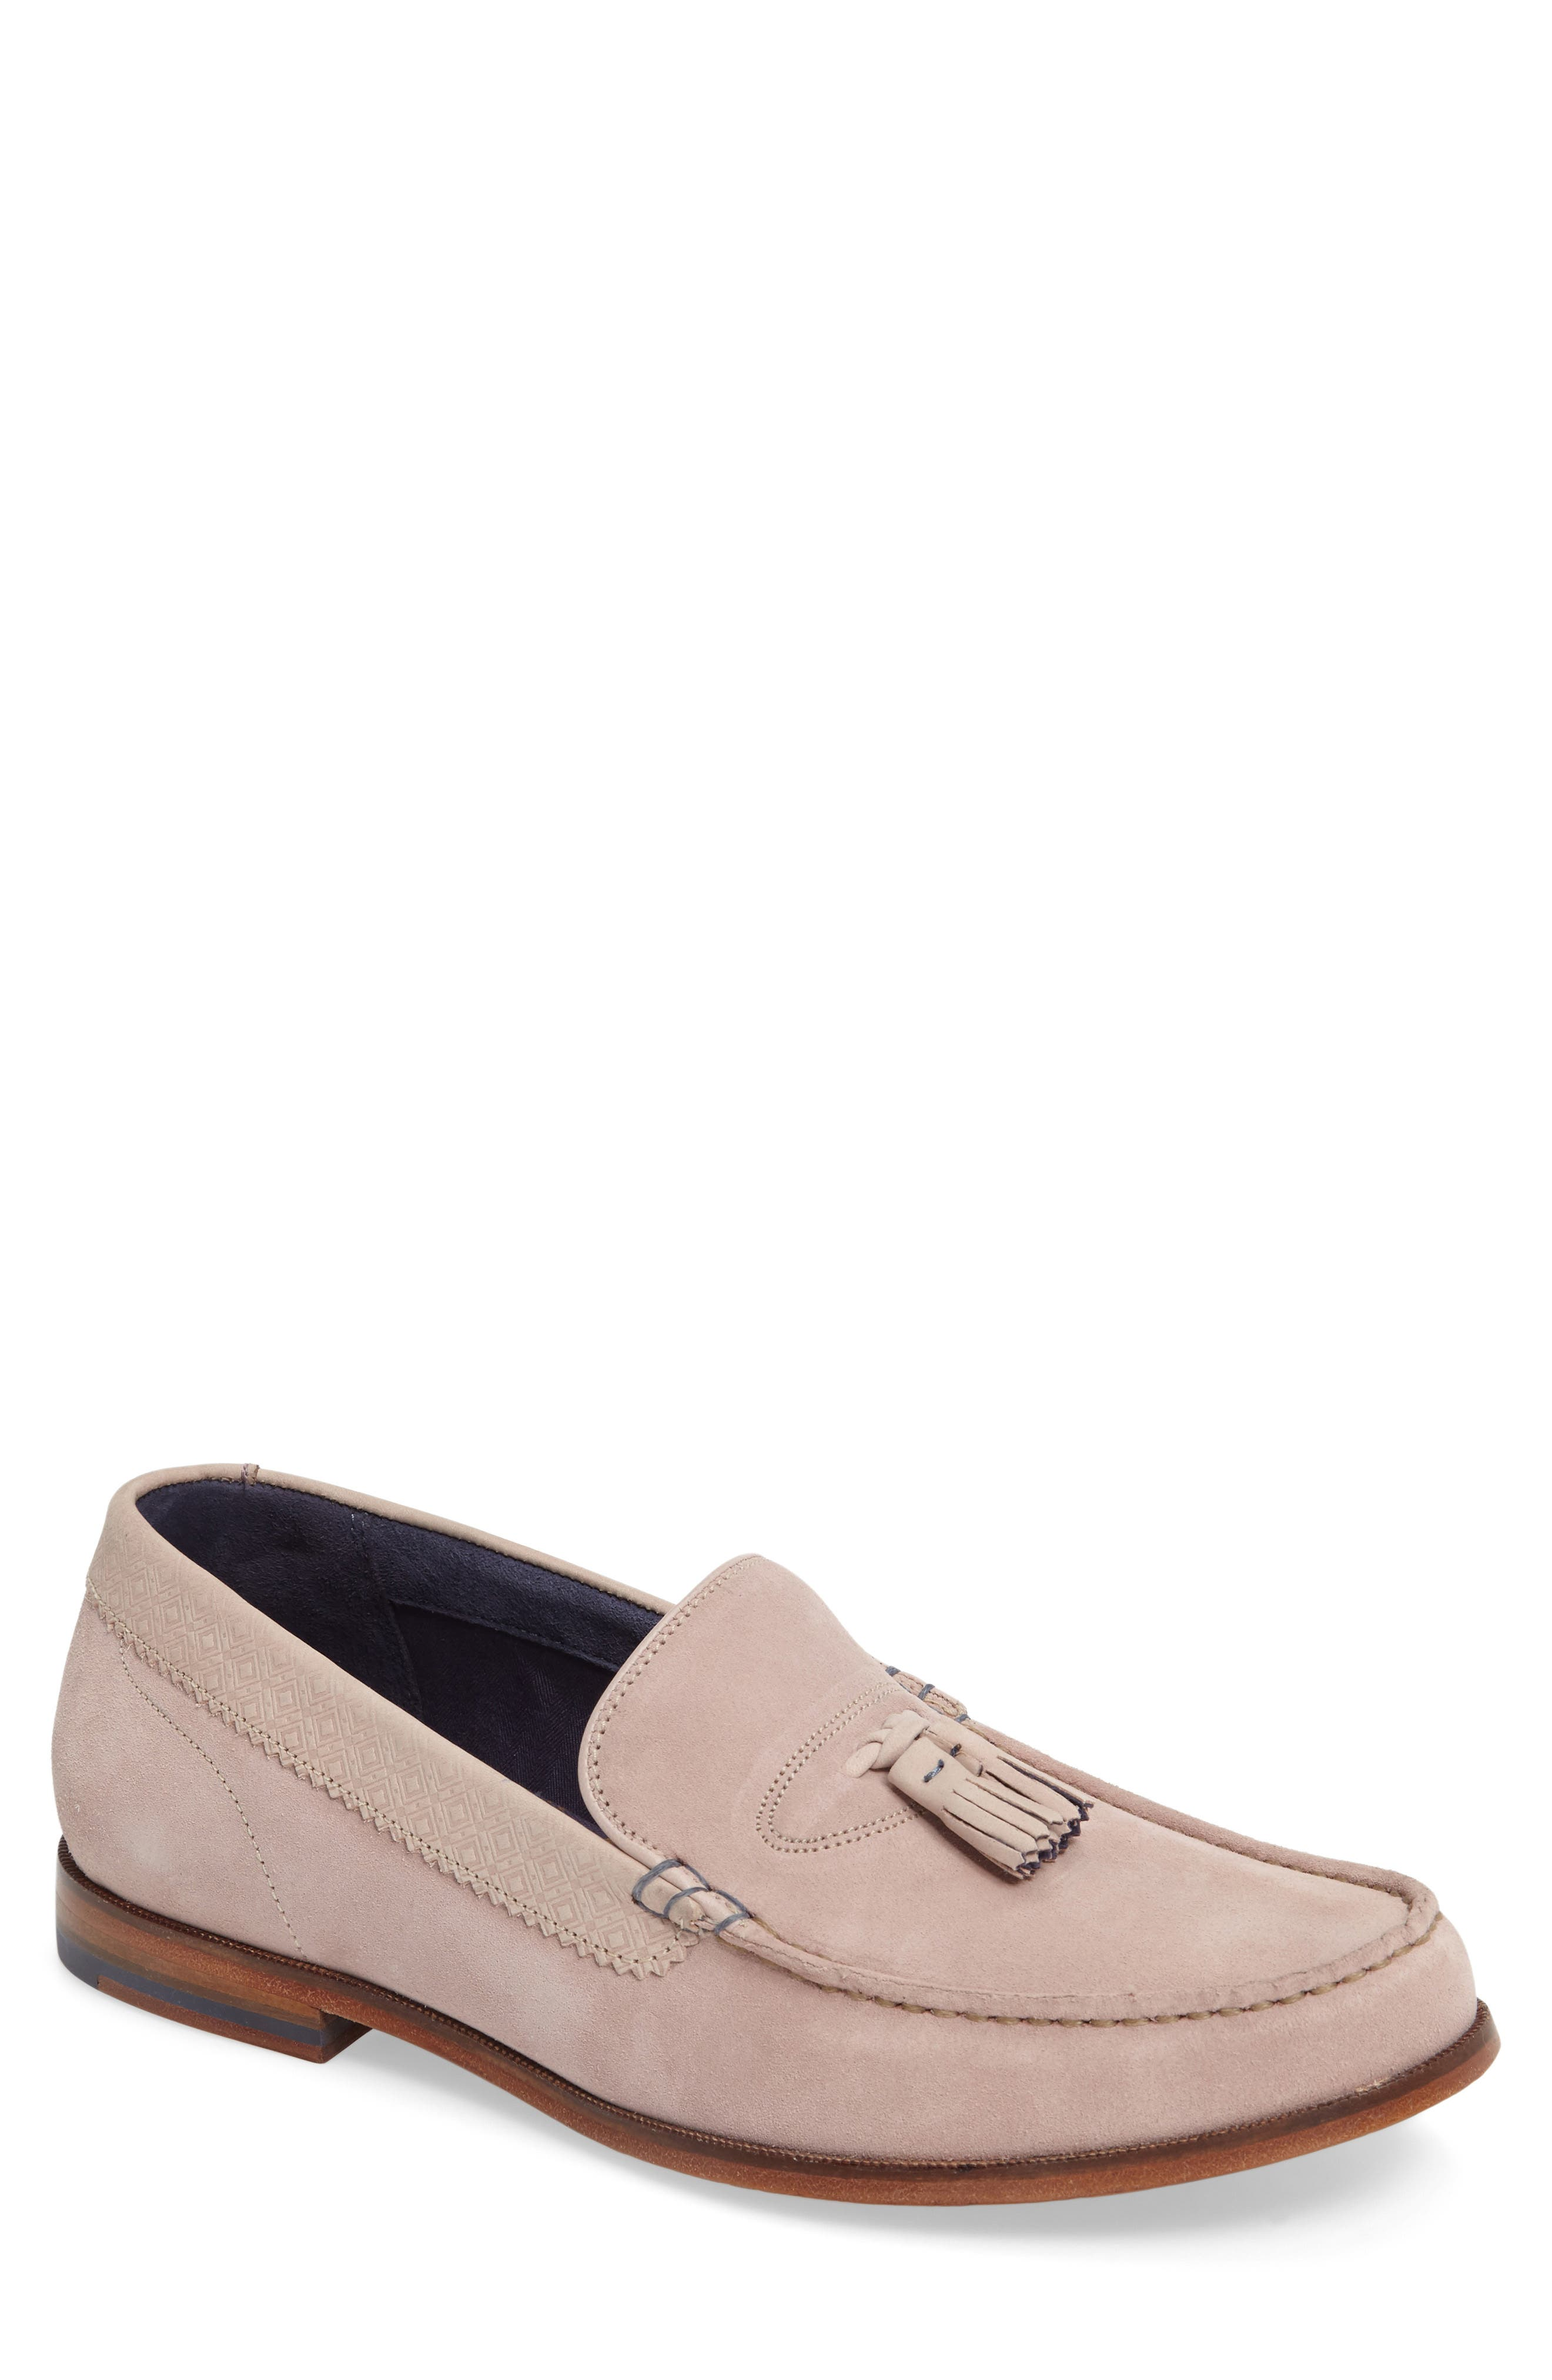 Dougge Tassel Loafer,                             Main thumbnail 6, color,